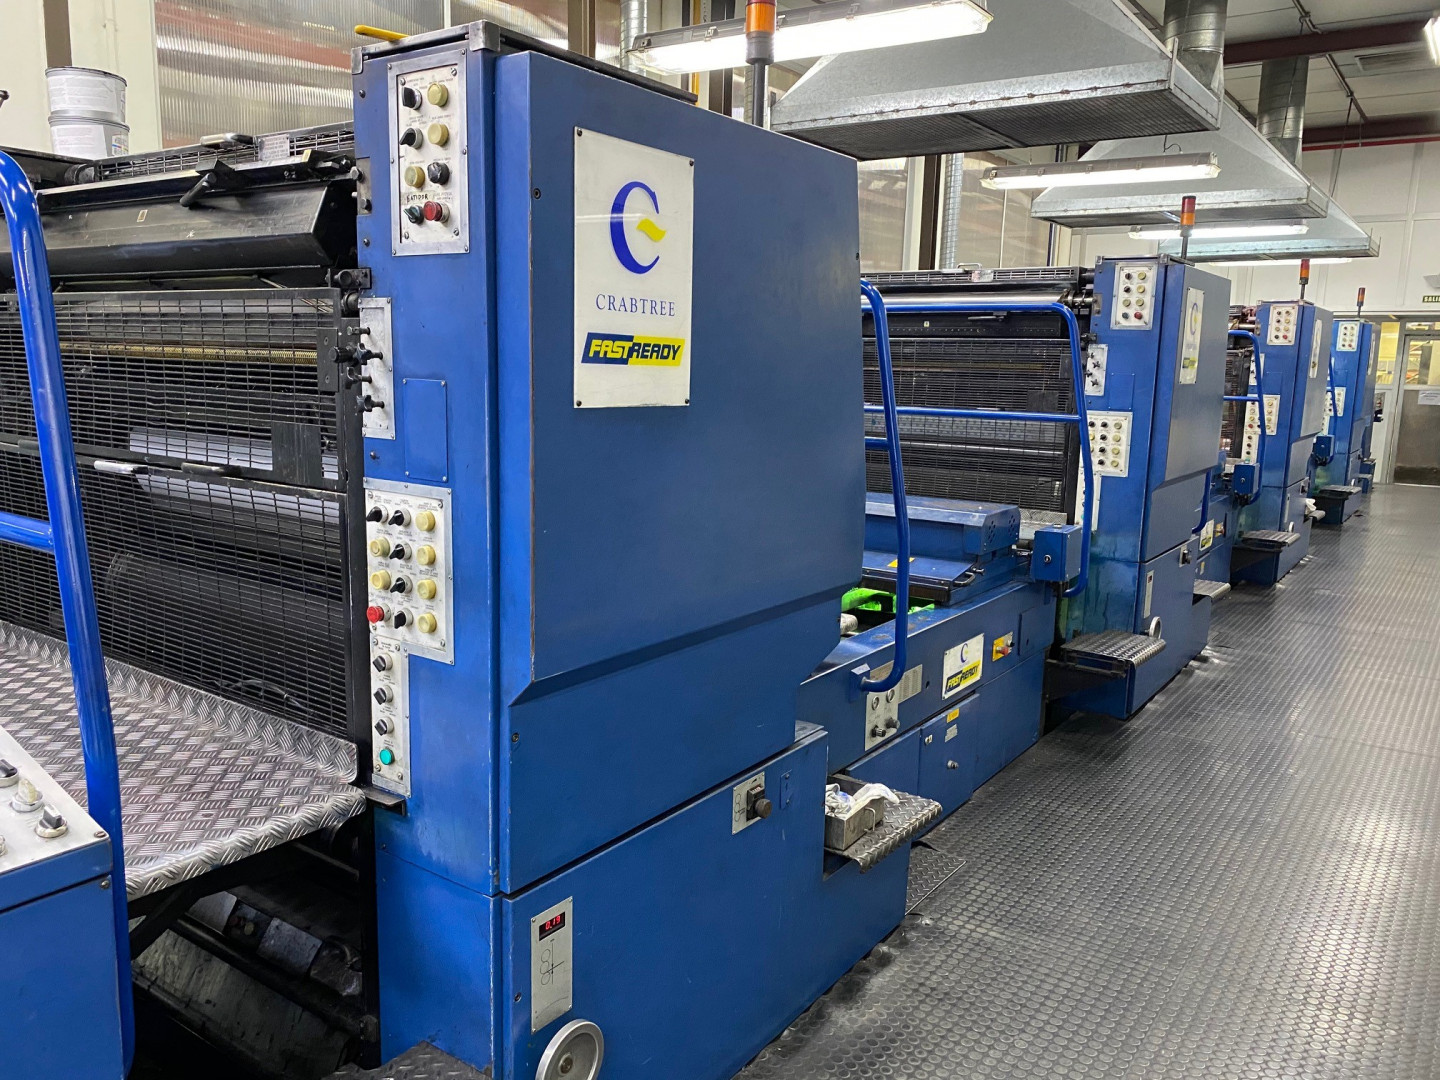 Crabtree FASTREADY 4-colour UV printing line